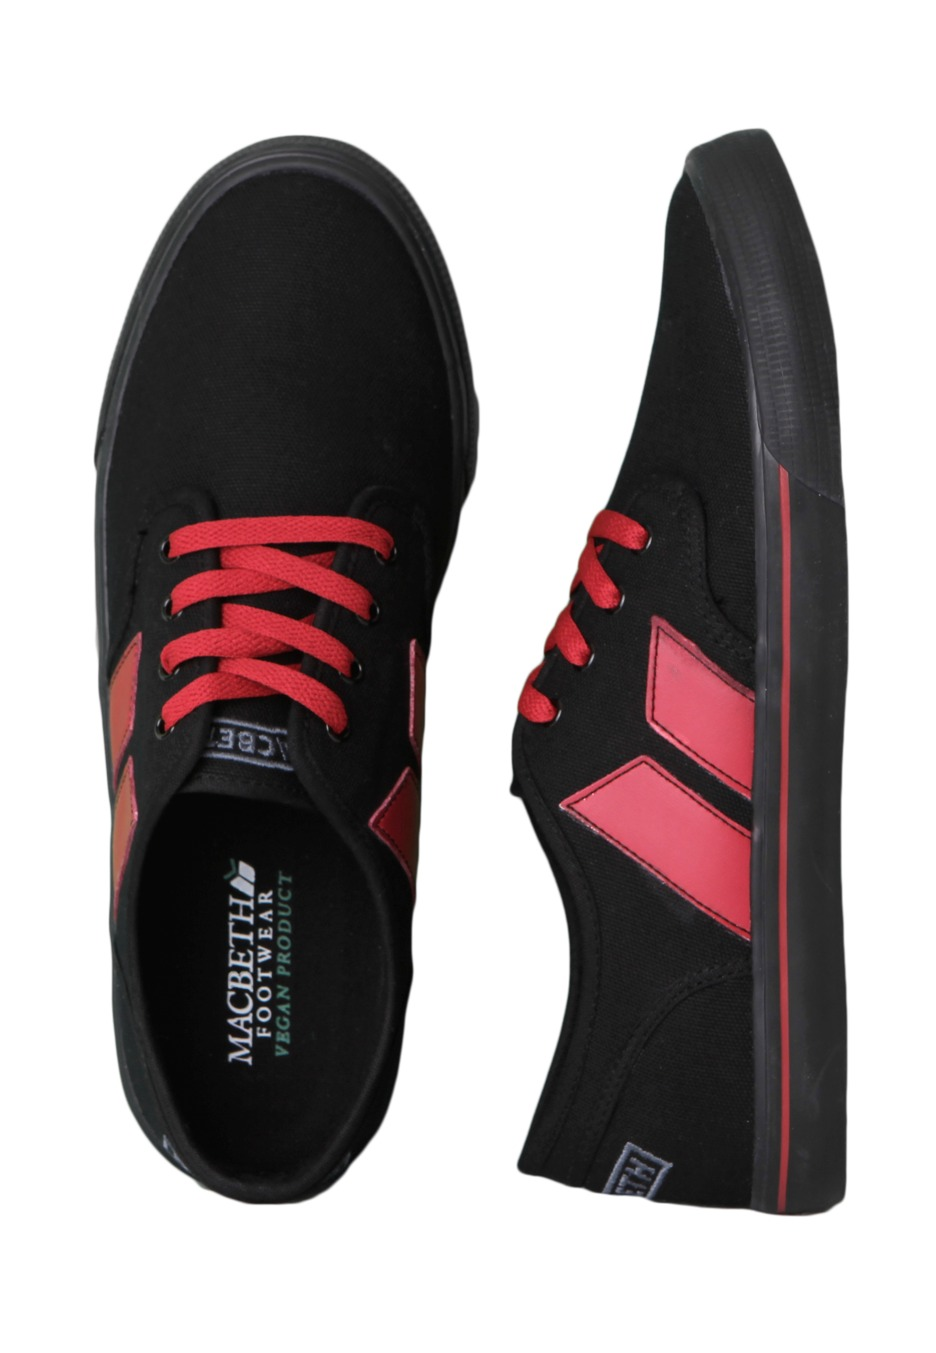 Macbeth - Langley Black/Red - Shoes - Impericon.com Worldwide